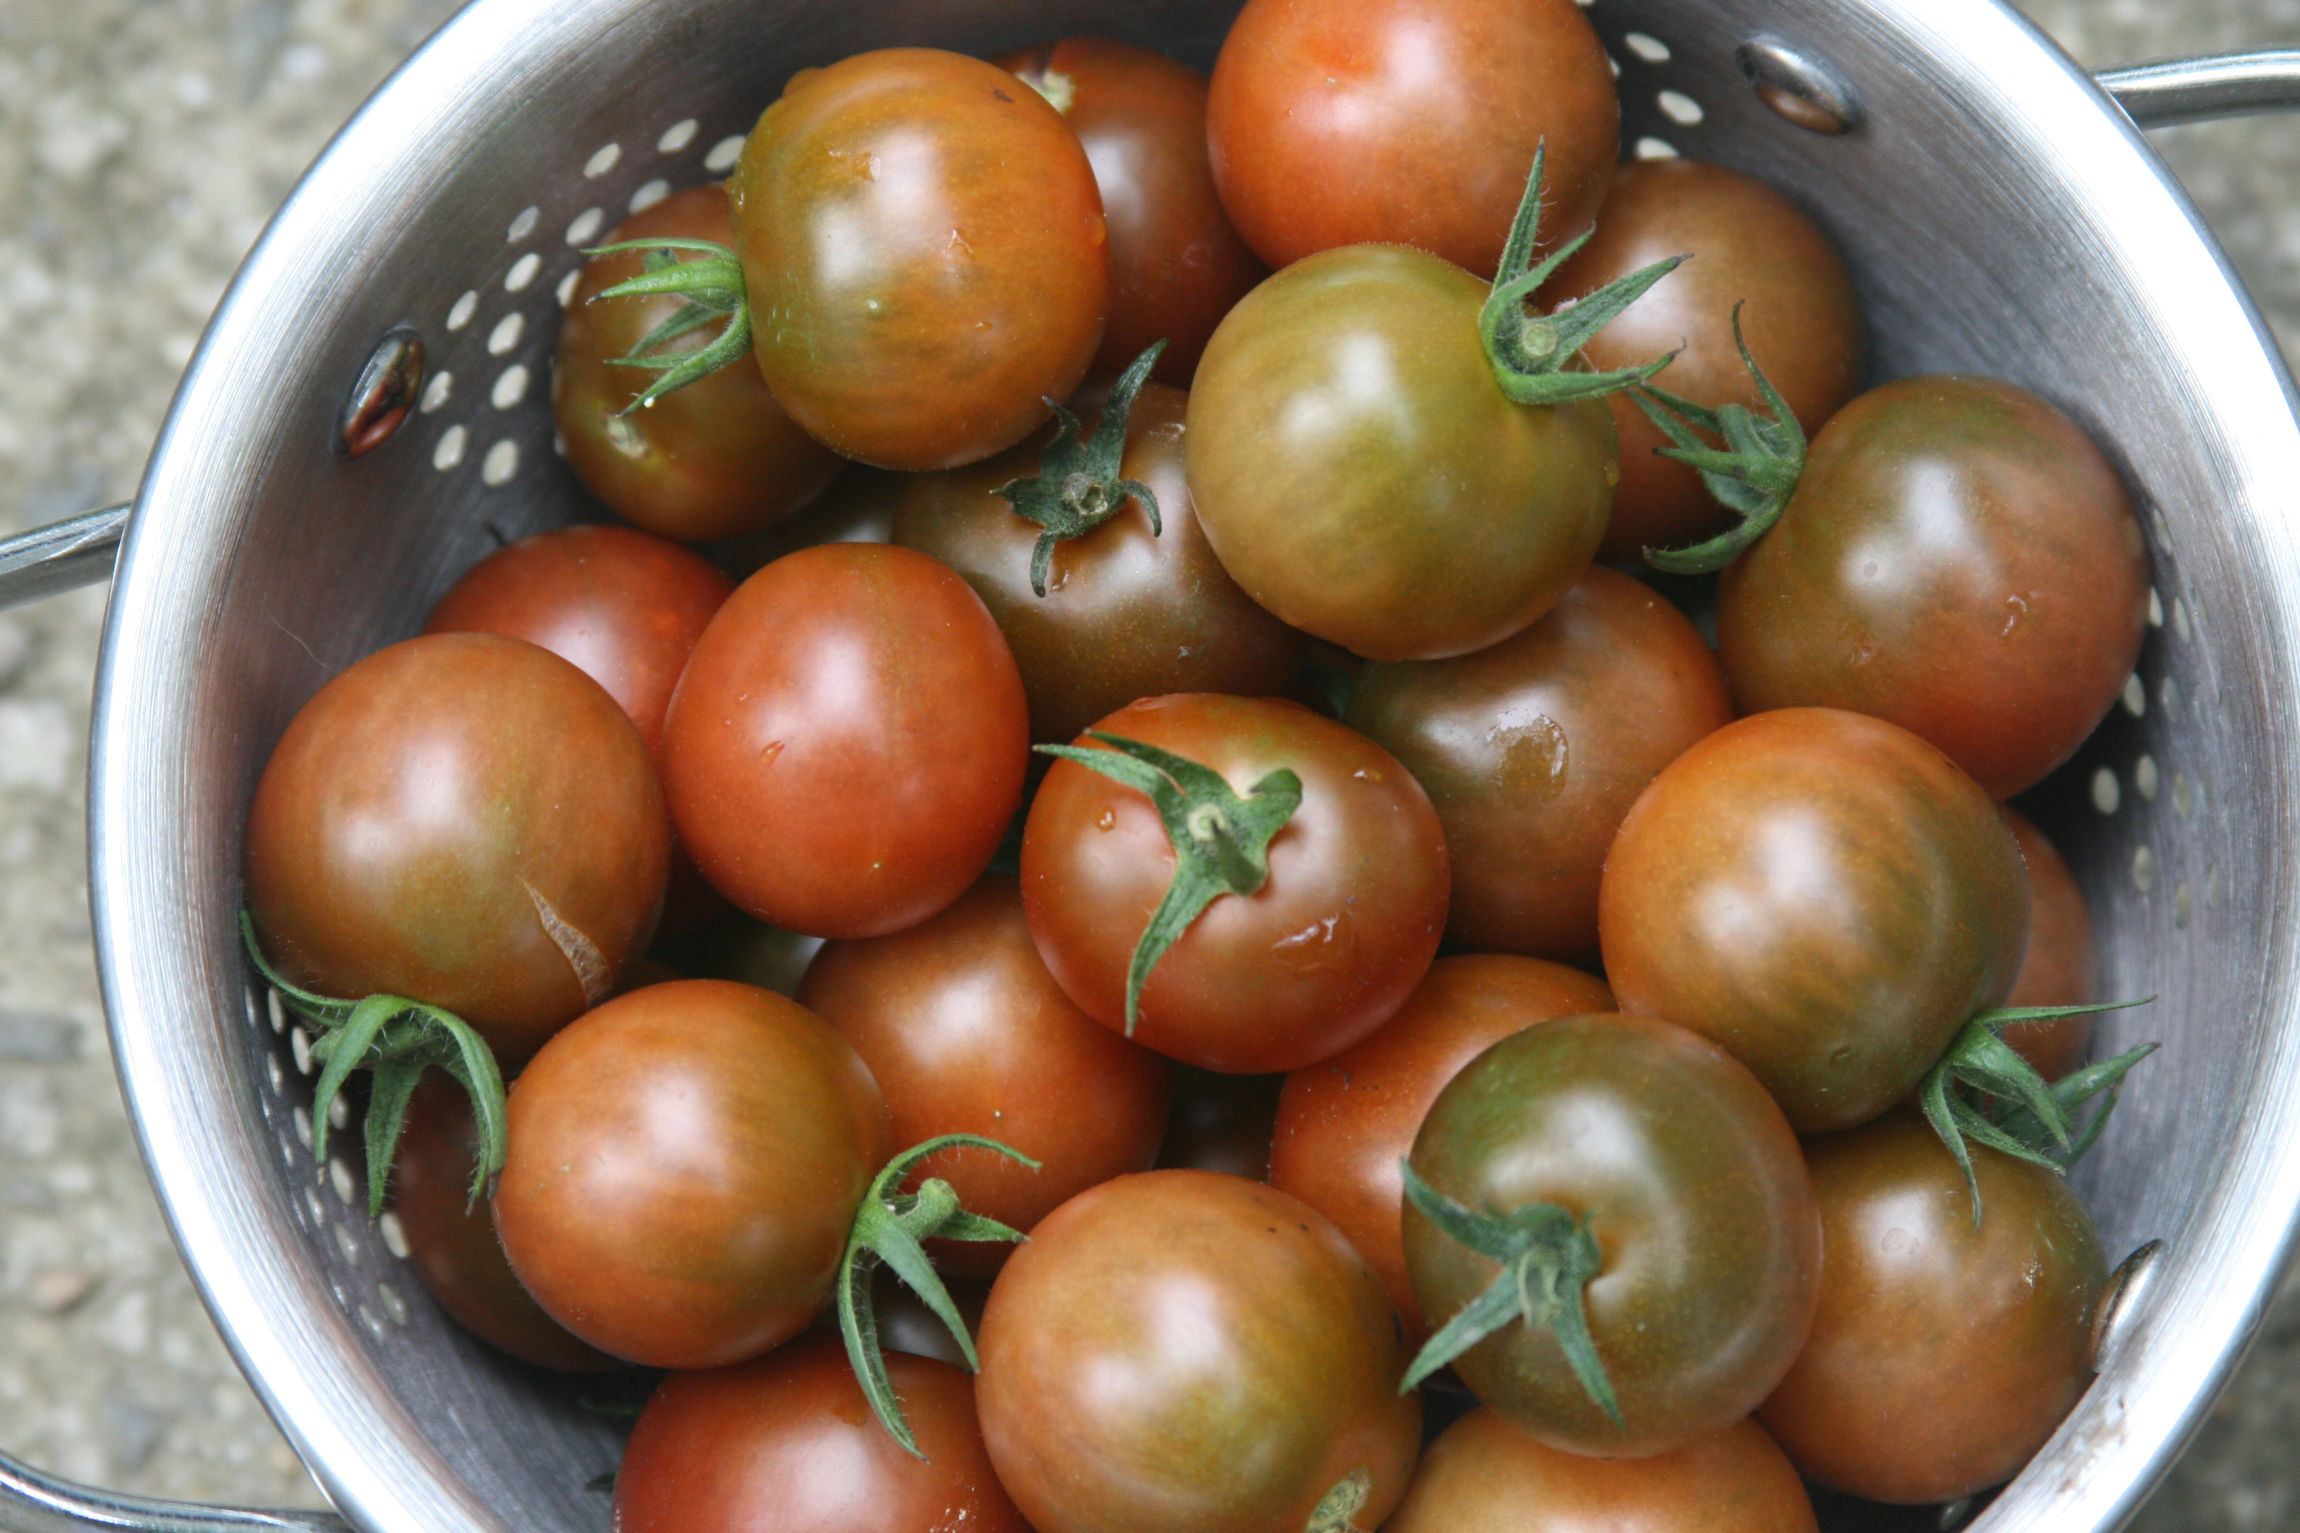 Cherry tomatoes in a metal colander.